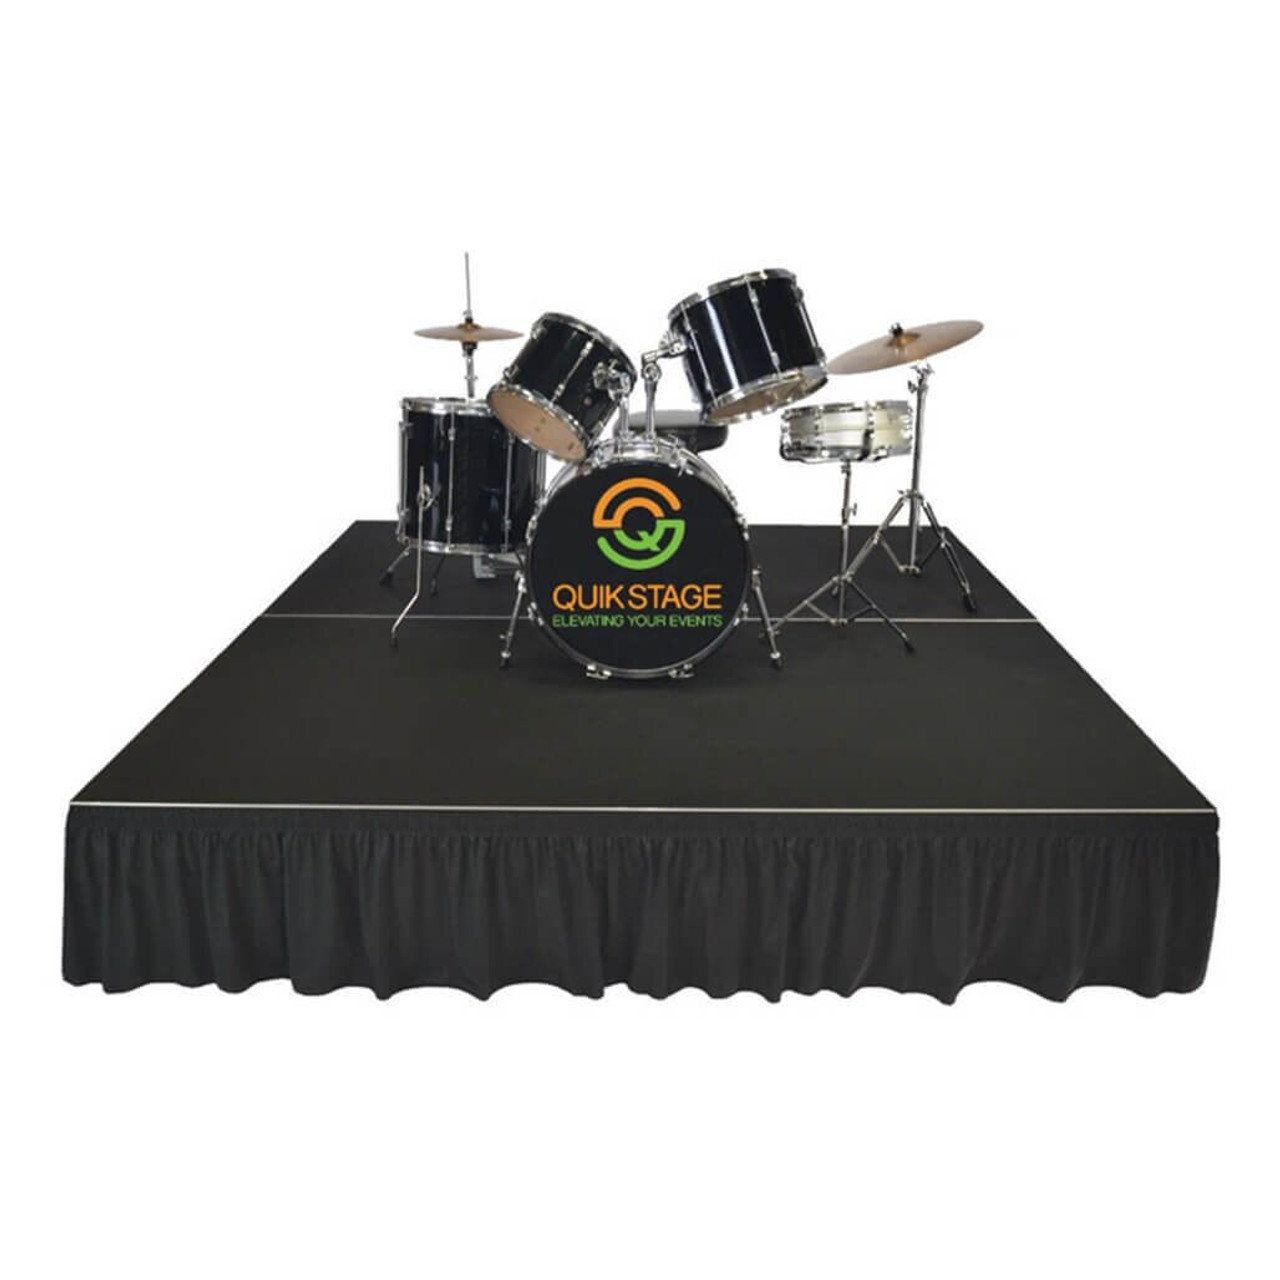 Top reviewed Quik Stage 4' x 16' High Portable Stage Package with Black Polyvinyl Non-Skid Surface. Additional Heights and Surfaces Available. - Drum Riser with skirting.